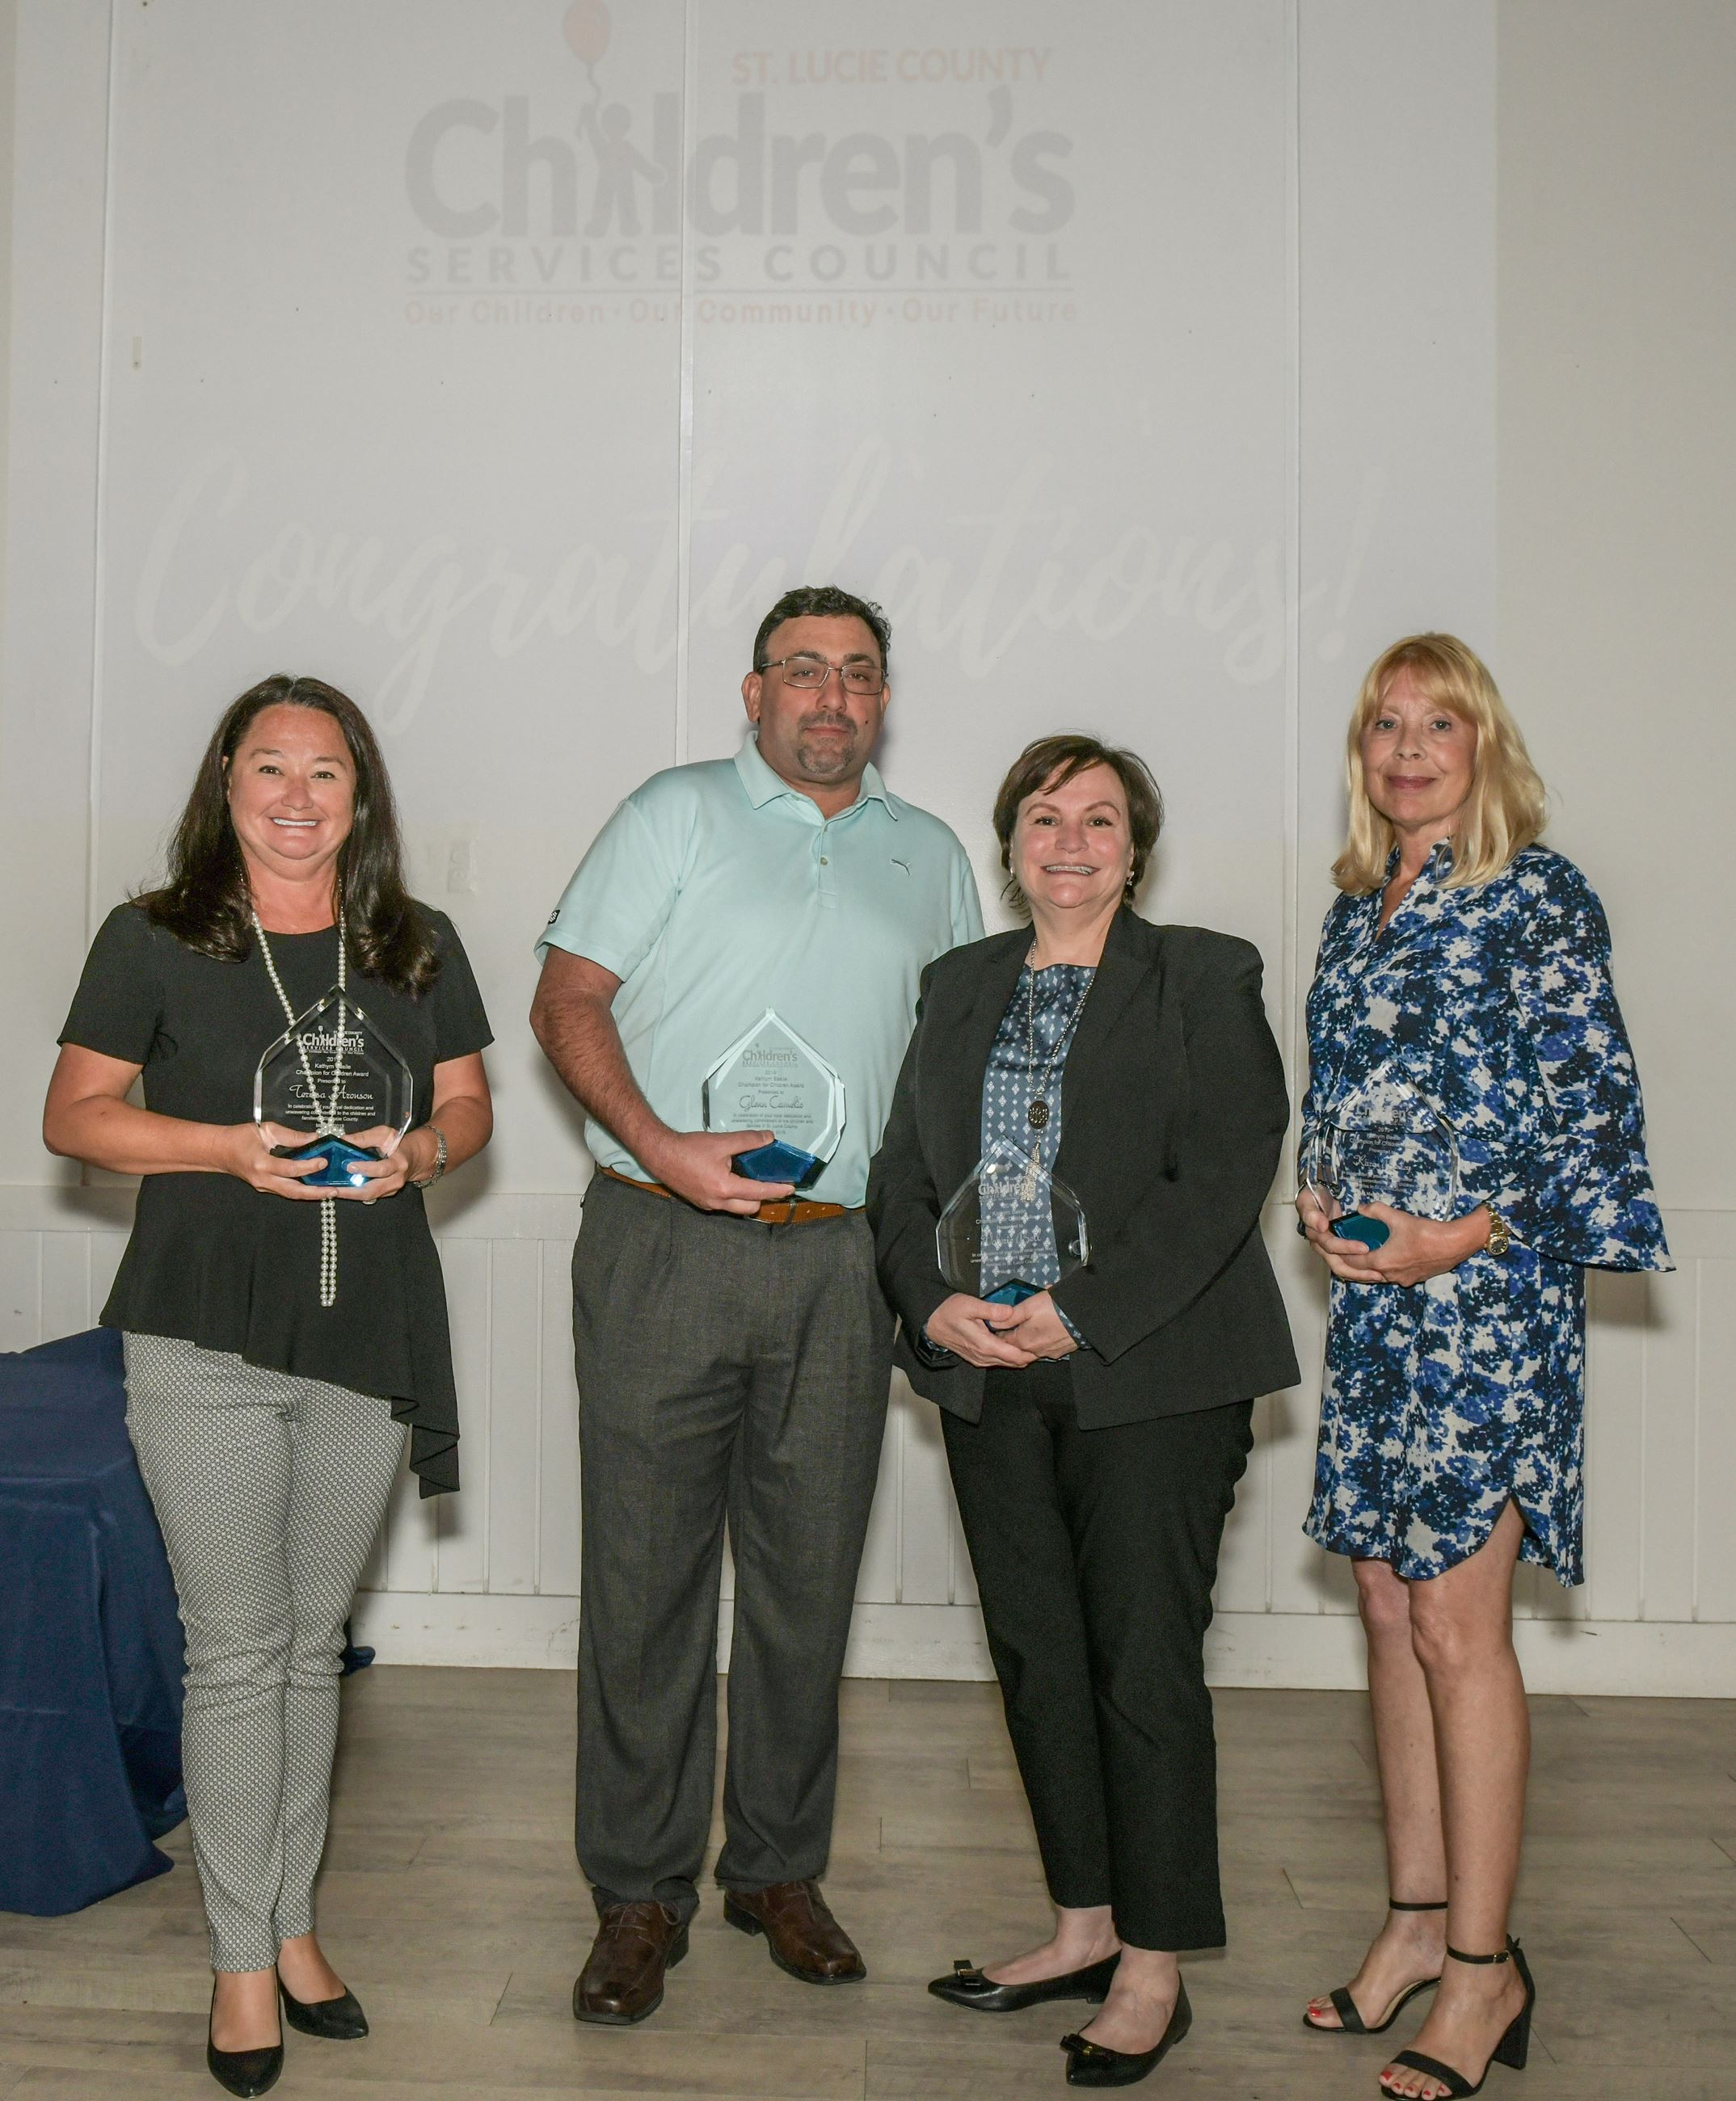 Kathy Basile Champions for Children Terissa Aronson, Glenn Camelio, Valerie Bell and Karen Bailey